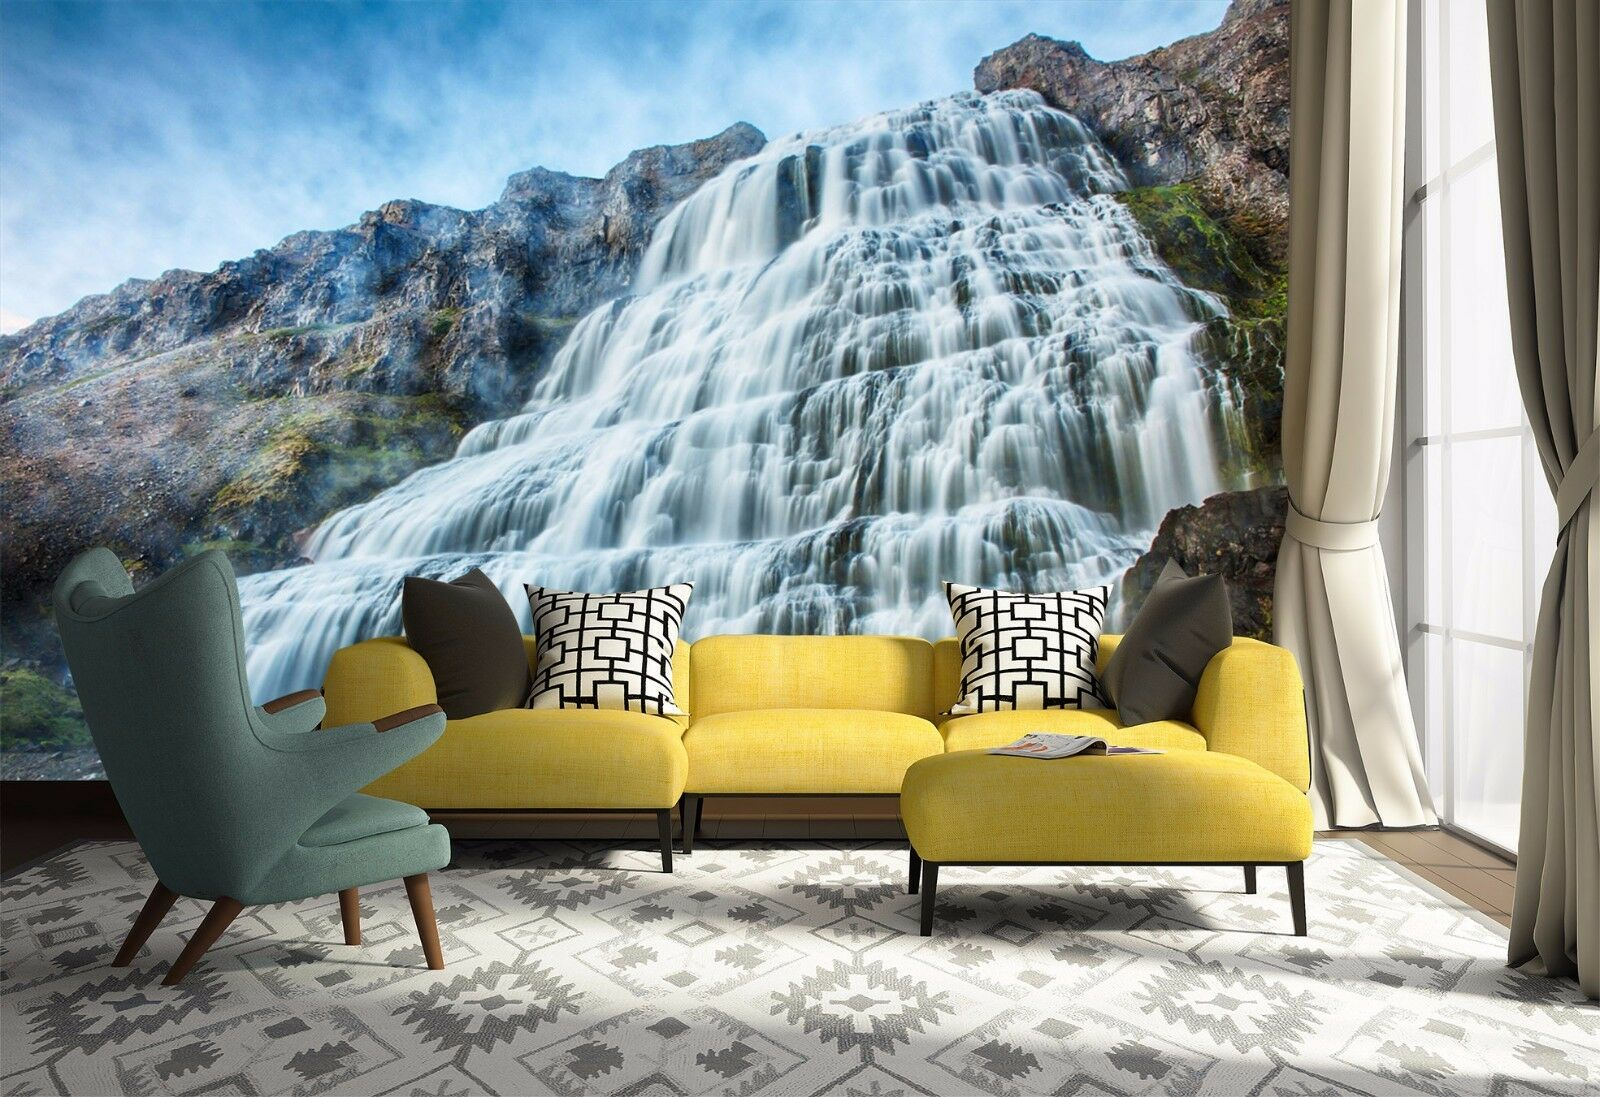 3D Sky Stone Waterfall 834 Wallpaper Mural Paper Wall Print Wallpaper Murals UK